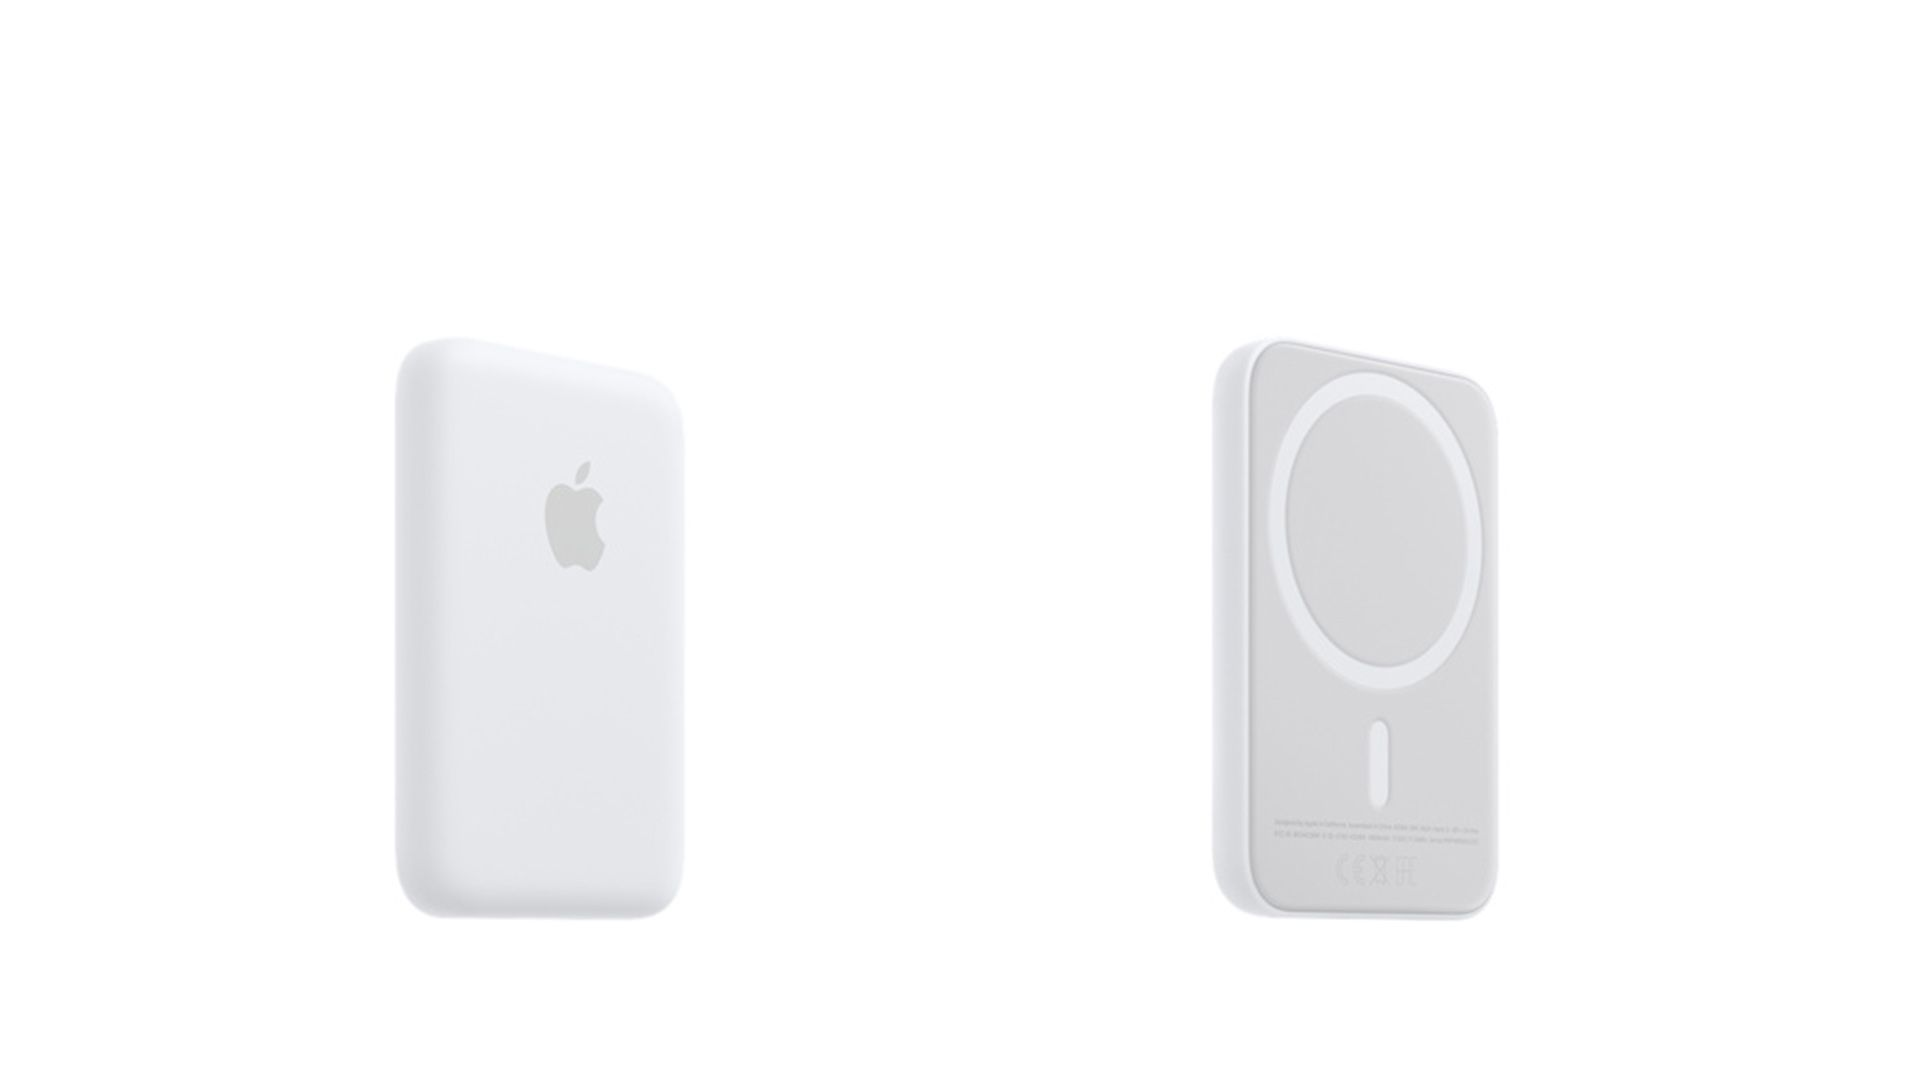 Apple's MagSafe Battery Pack front and back